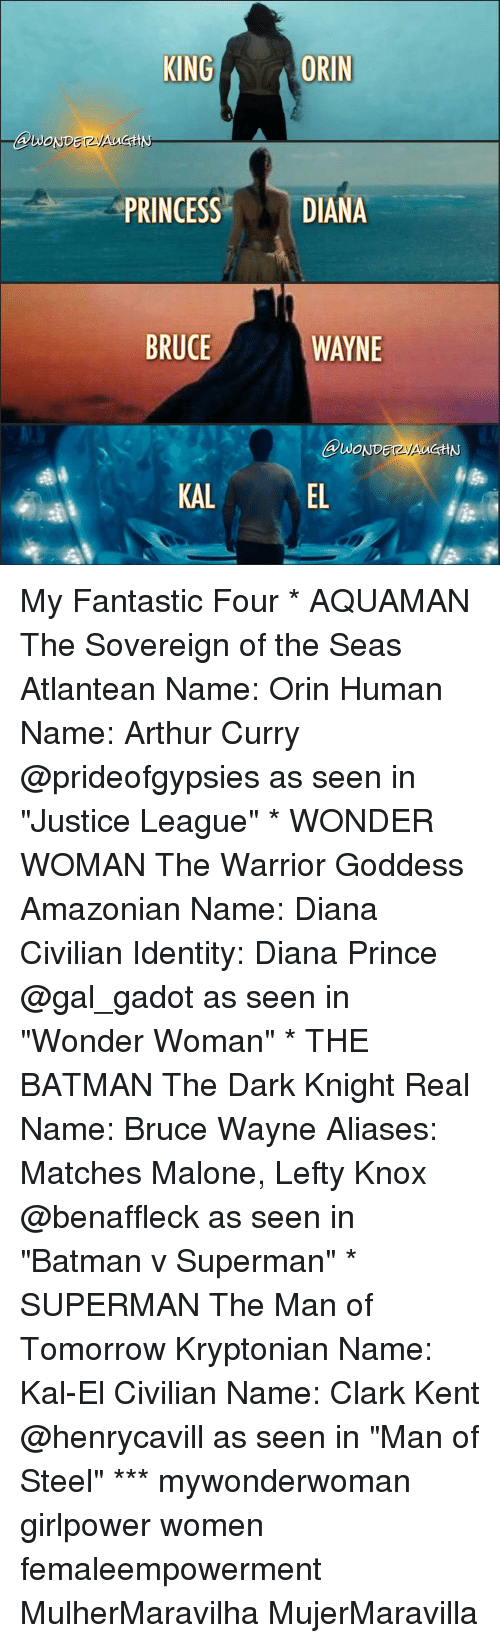 "the warrior: KING  ORIN  DIANA  PRINCESS  BRUCE  WAYNE  KAL My Fantastic Four * AQUAMAN The Sovereign of the Seas Atlantean Name: Orin Human Name: Arthur Curry @prideofgypsies as seen in ""Justice League"" * WONDER WOMAN The Warrior Goddess Amazonian Name: Diana Civilian Identity: Diana Prince @gal_gadot as seen in ""Wonder Woman"" * THE BATMAN The Dark Knight Real Name: Bruce Wayne Aliases: Matches Malone, Lefty Knox @benaffleck as seen in ""Batman v Superman"" * SUPERMAN The Man of Tomorrow Kryptonian Name: Kal-El Civilian Name: Clark Kent @henrycavill as seen in ""Man of Steel"" *** mywonderwoman girlpower women femaleempowerment MulherMaravilha MujerMaravilla"